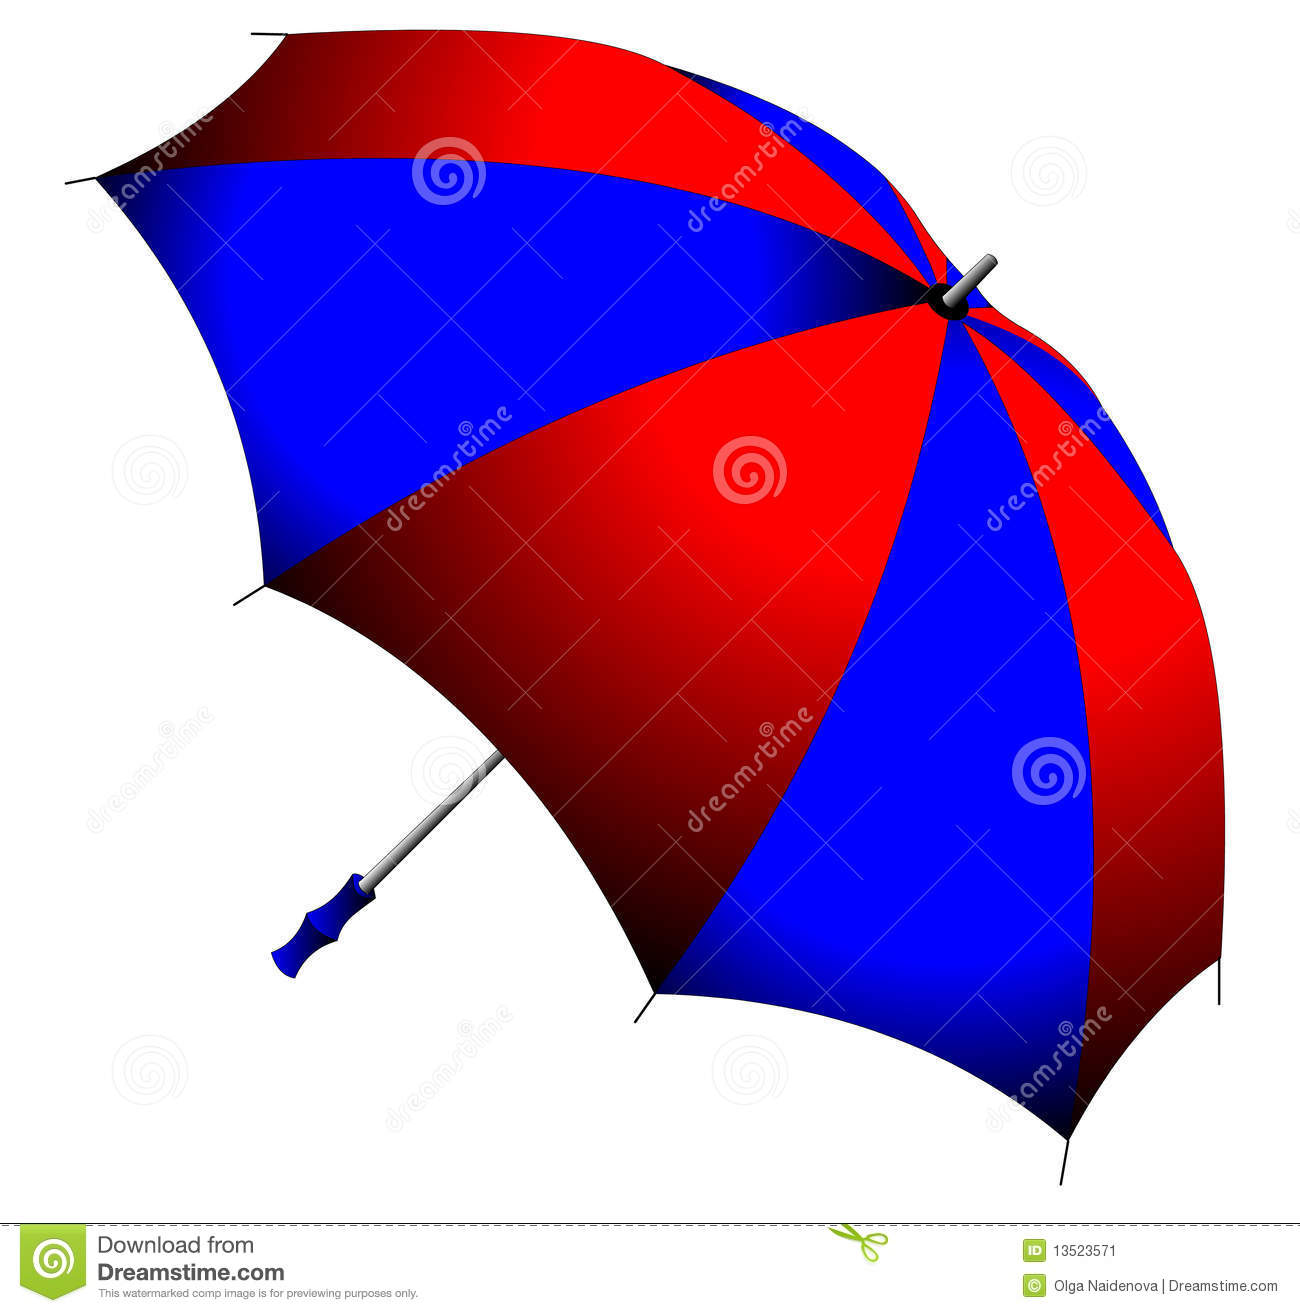 red and blue folding umbrella stock illustration image 13523571. Black Bedroom Furniture Sets. Home Design Ideas